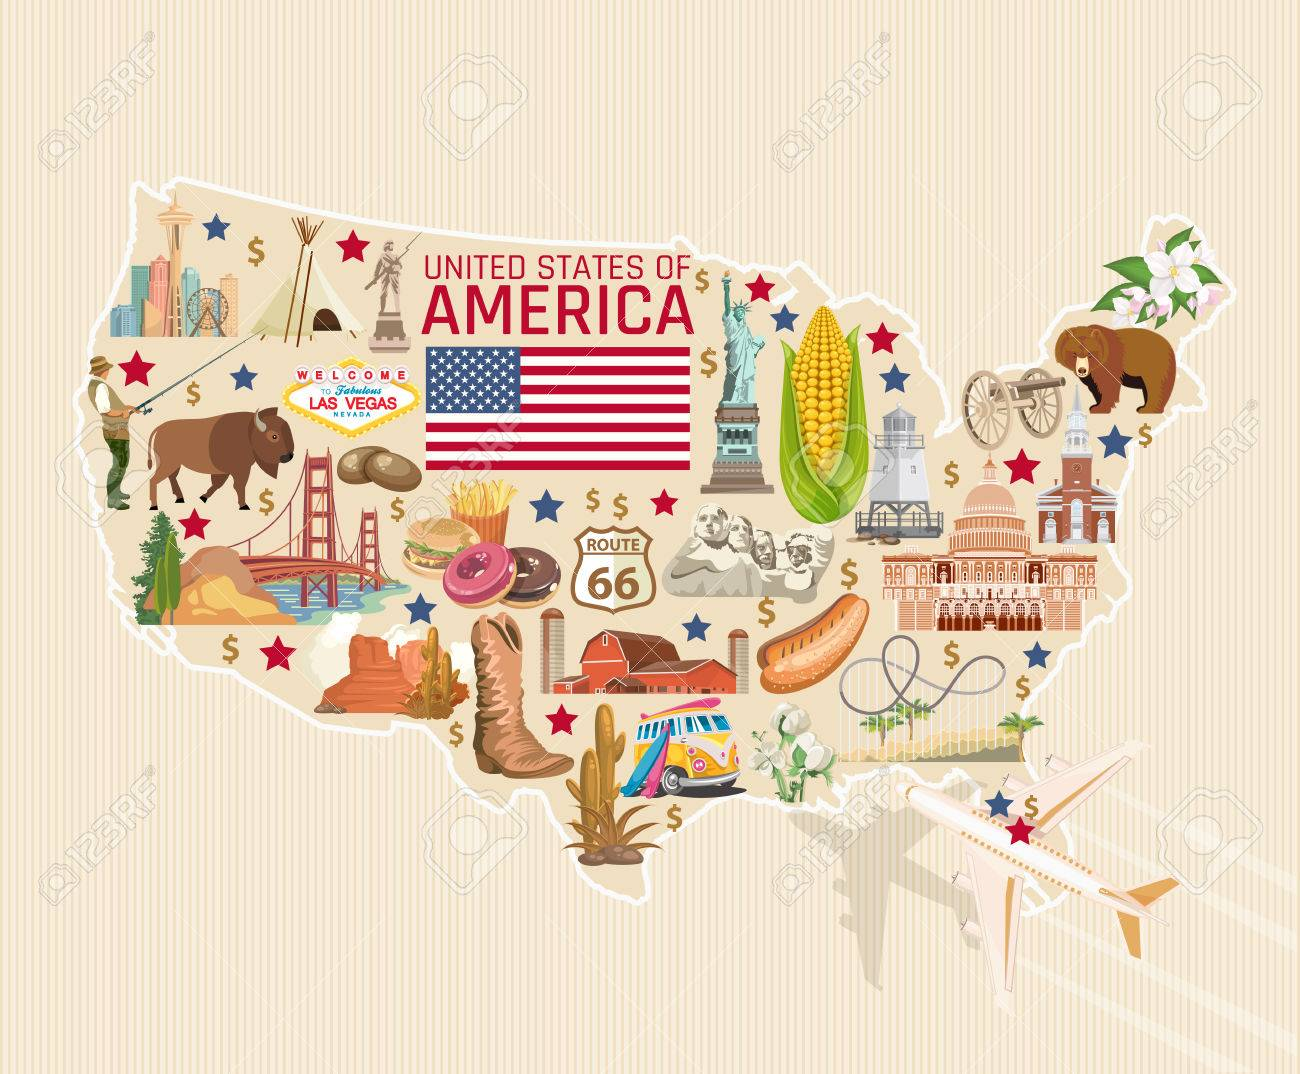 Welcome to USA. United States of America poster. Vector illustration about travel - 81792323